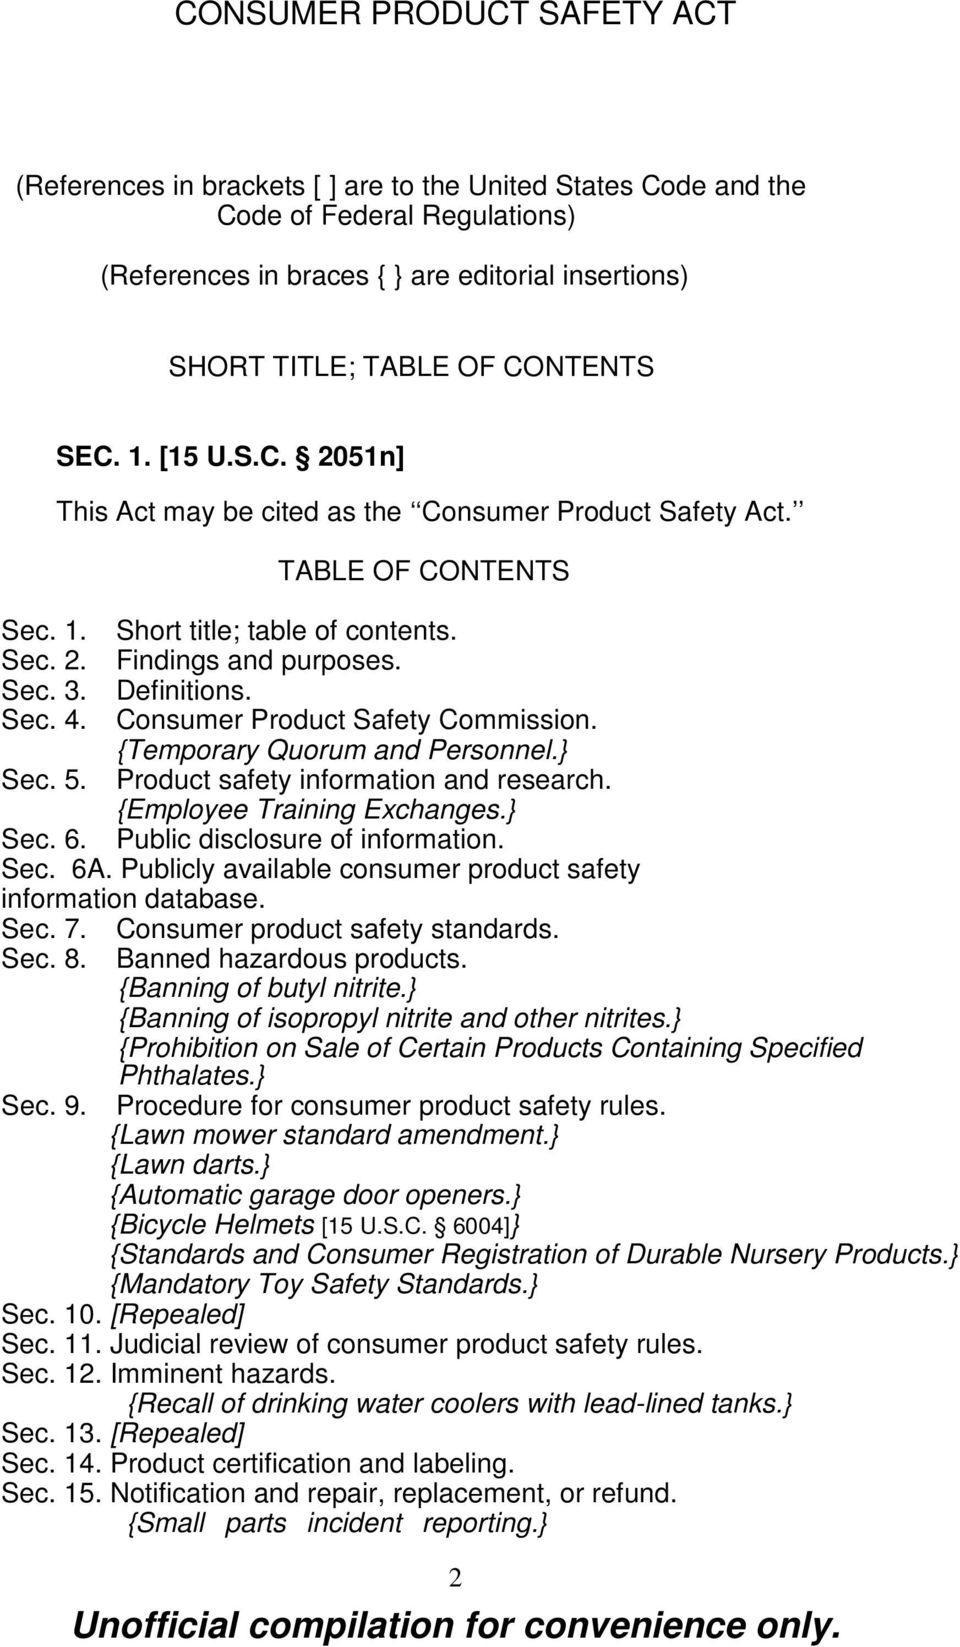 Product safety information and research. {Employee Training Exchanges.} Sec. 6. Public disclosure of information. Sec. 6A. Publicly available consumer product safety information database. Sec. 7.